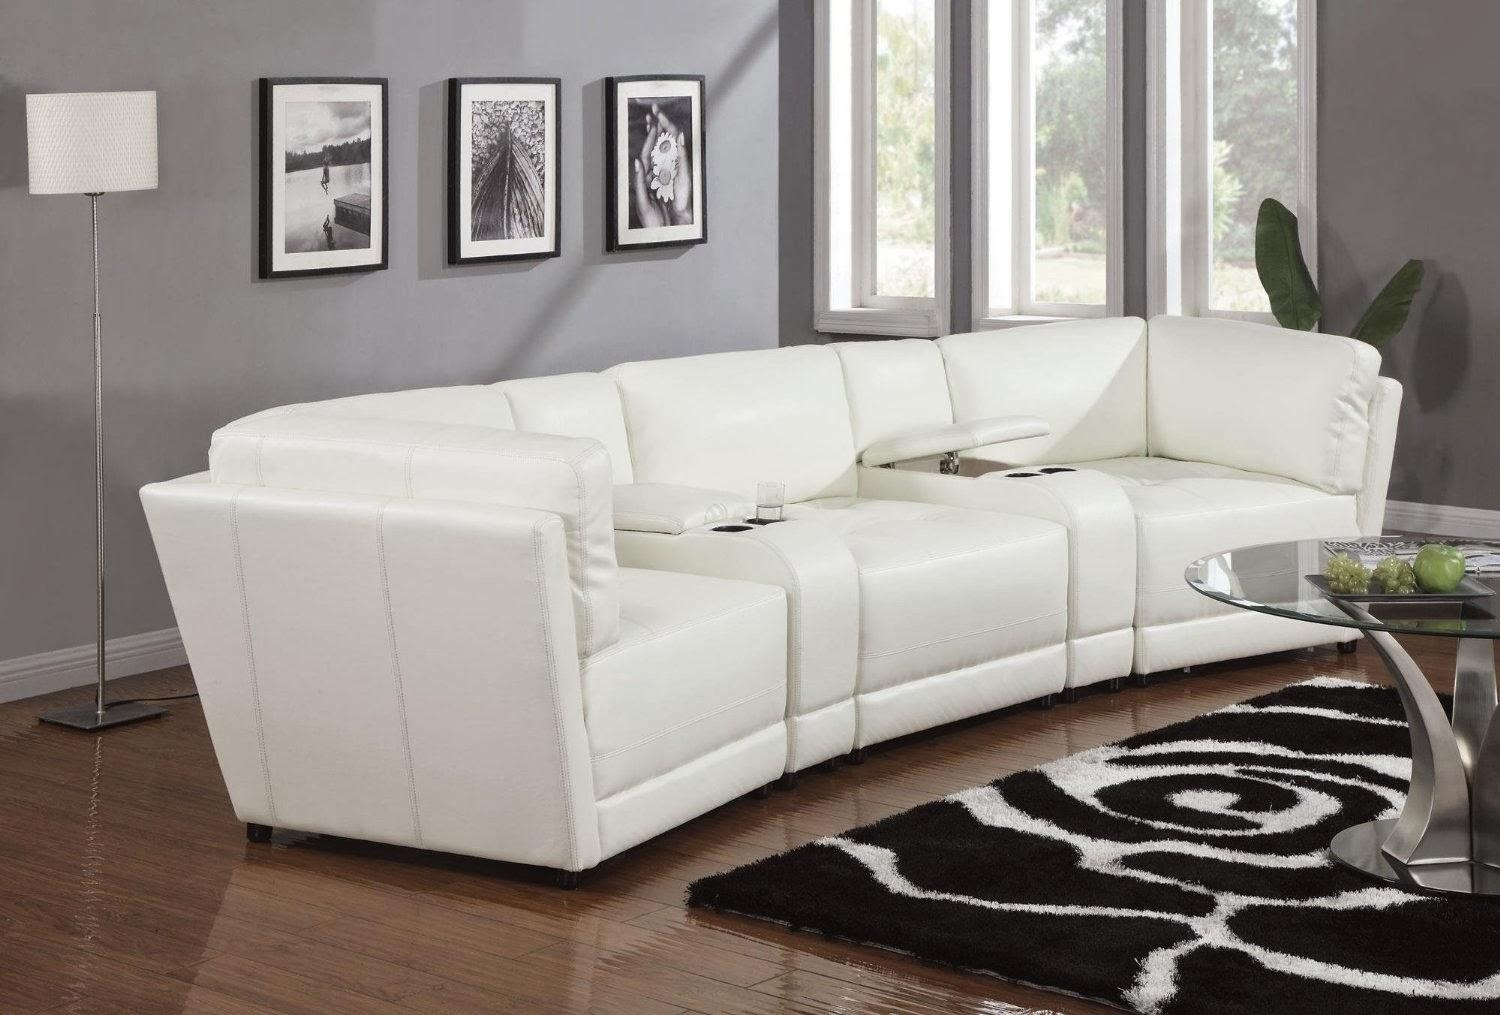 Magnificent Curved Sectional Sofas For Small Spaces #3849 Pertaining To Sectional Sofas In Small Spaces (View 18 of 20)